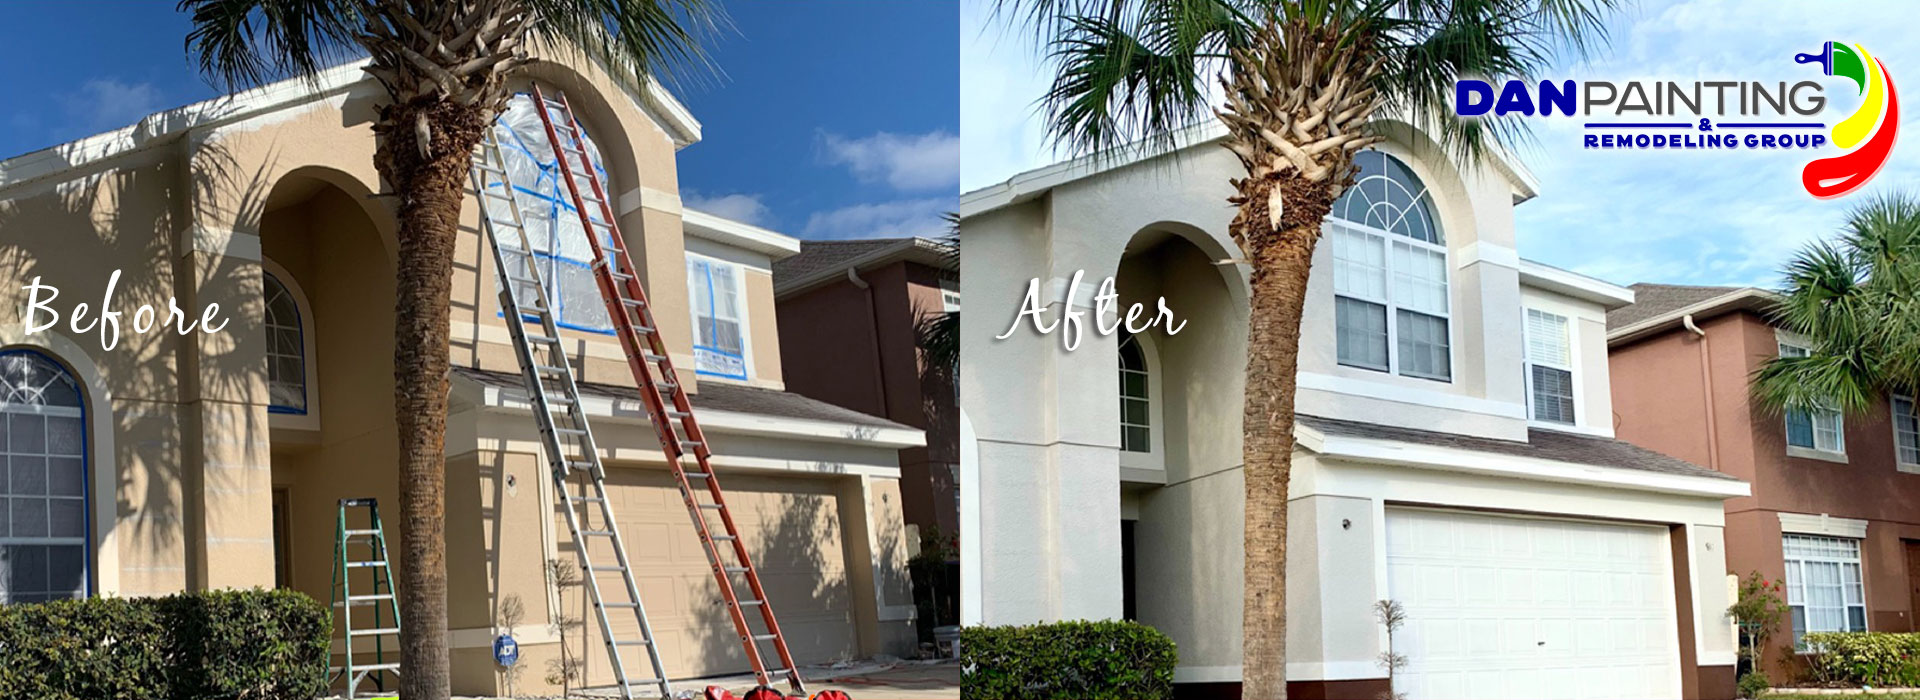 Residential Painting in Orlando and all state of Florida